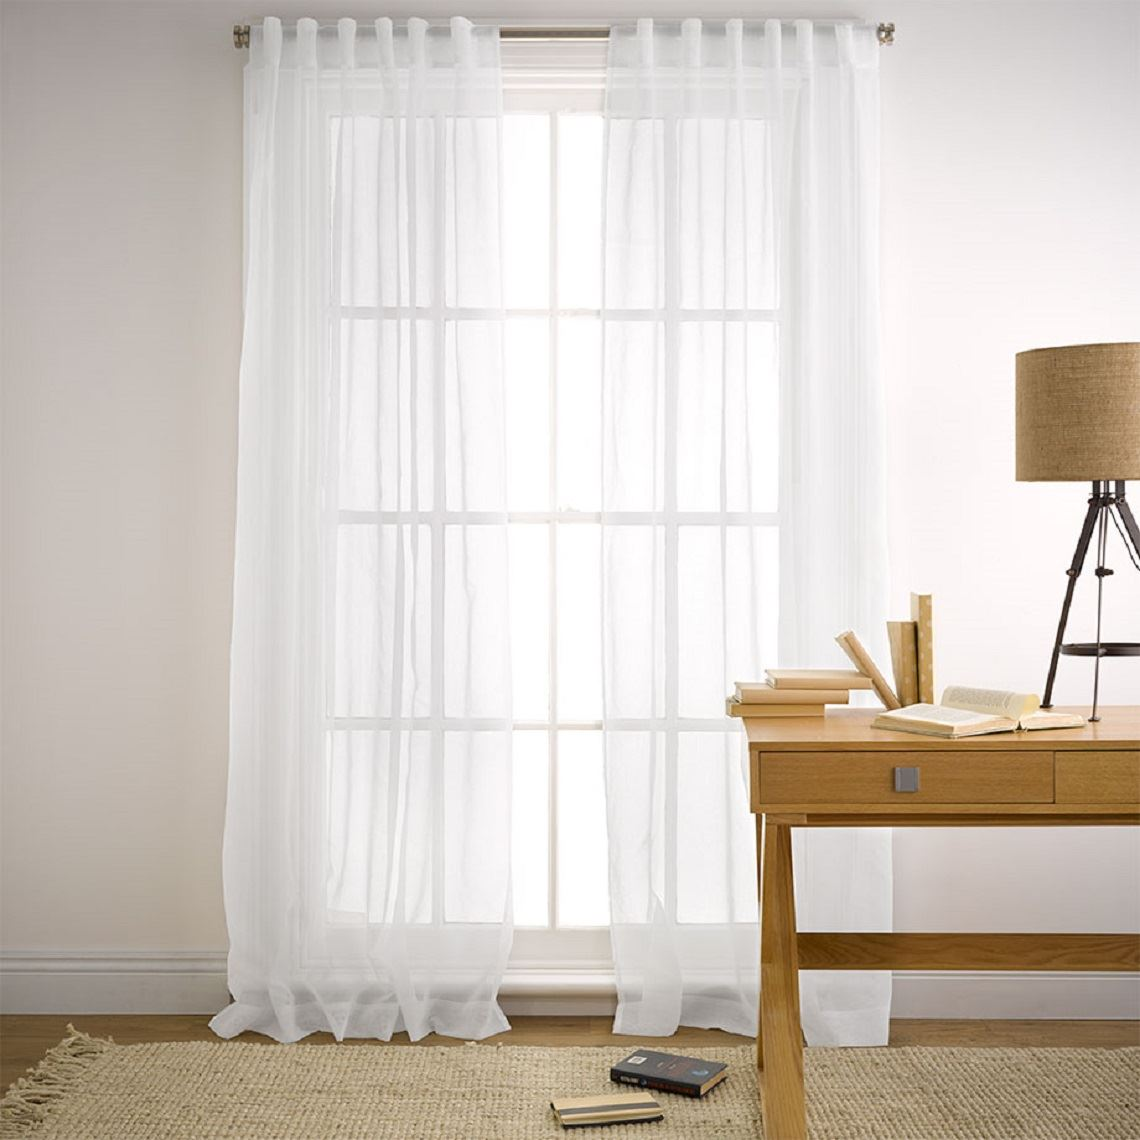 Mineral Tab Curtain Size W 180cm x D 1cm x H 250cm in White 100% Polyester Freedom by Freedom, a Curtains for sale on Style Sourcebook